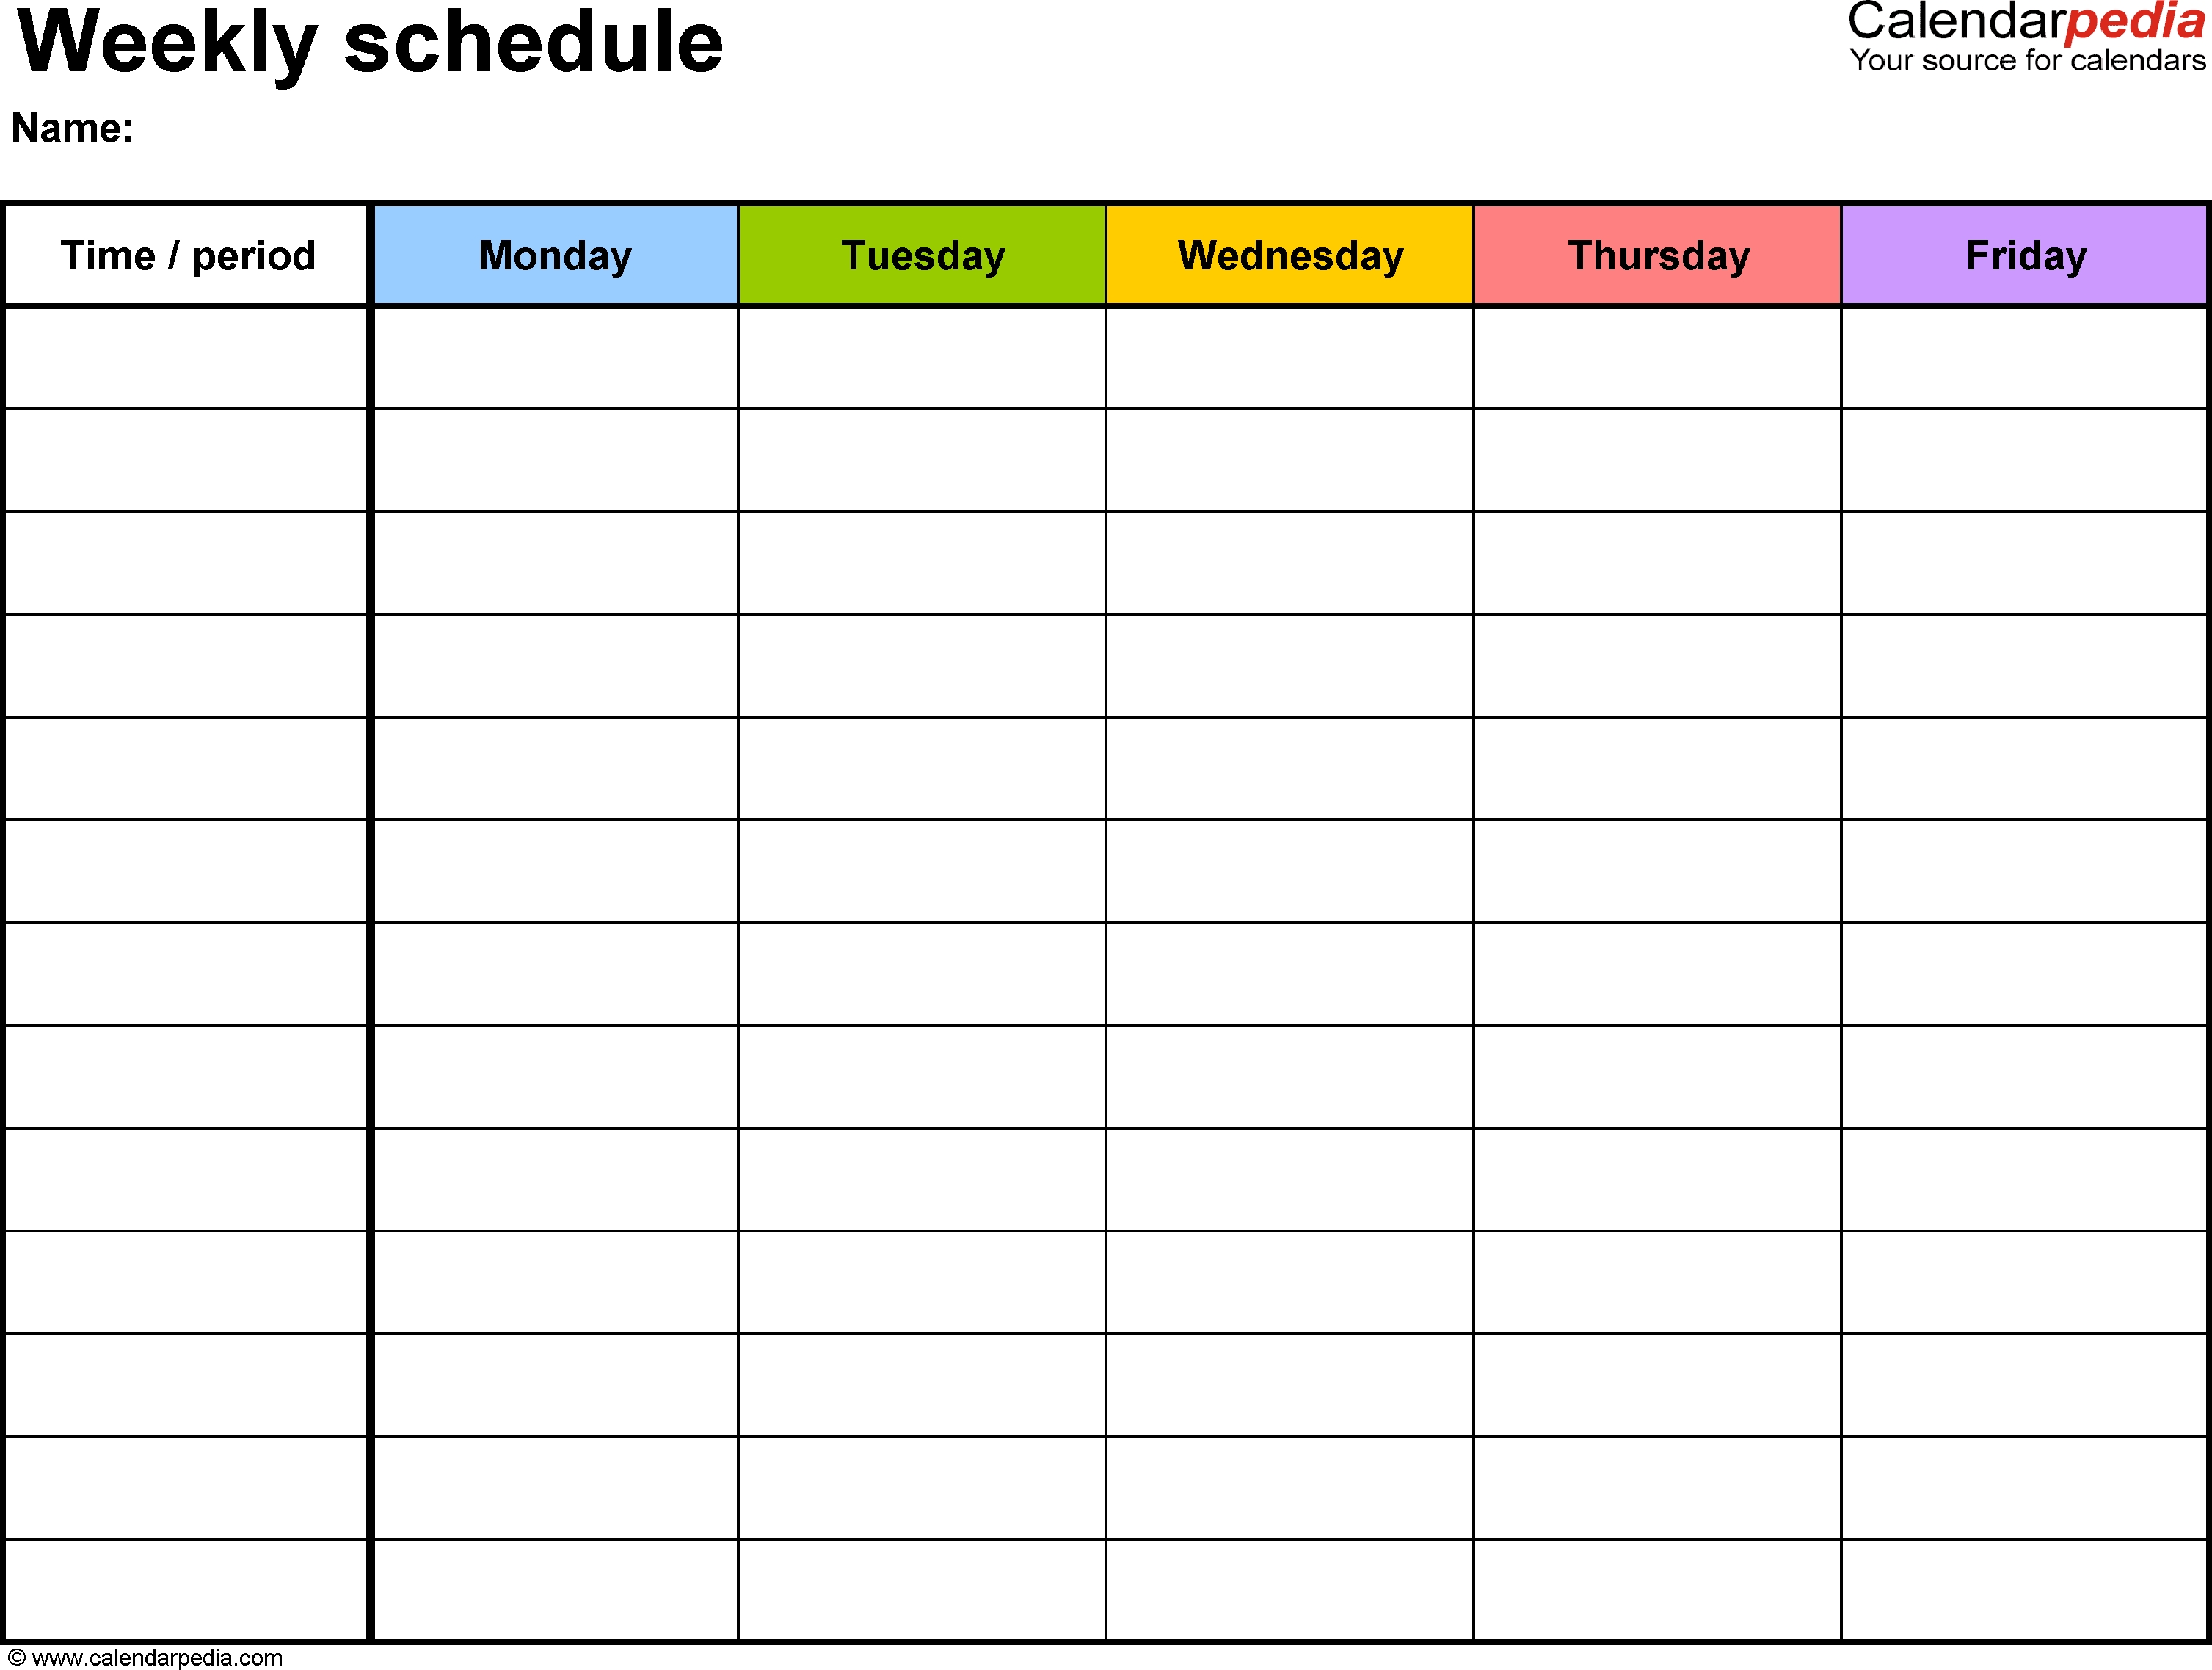 Free Weekly Schedule Templates For Pdf - 18 Templates pertaining to Free Printable Weekly Calendars Pdf